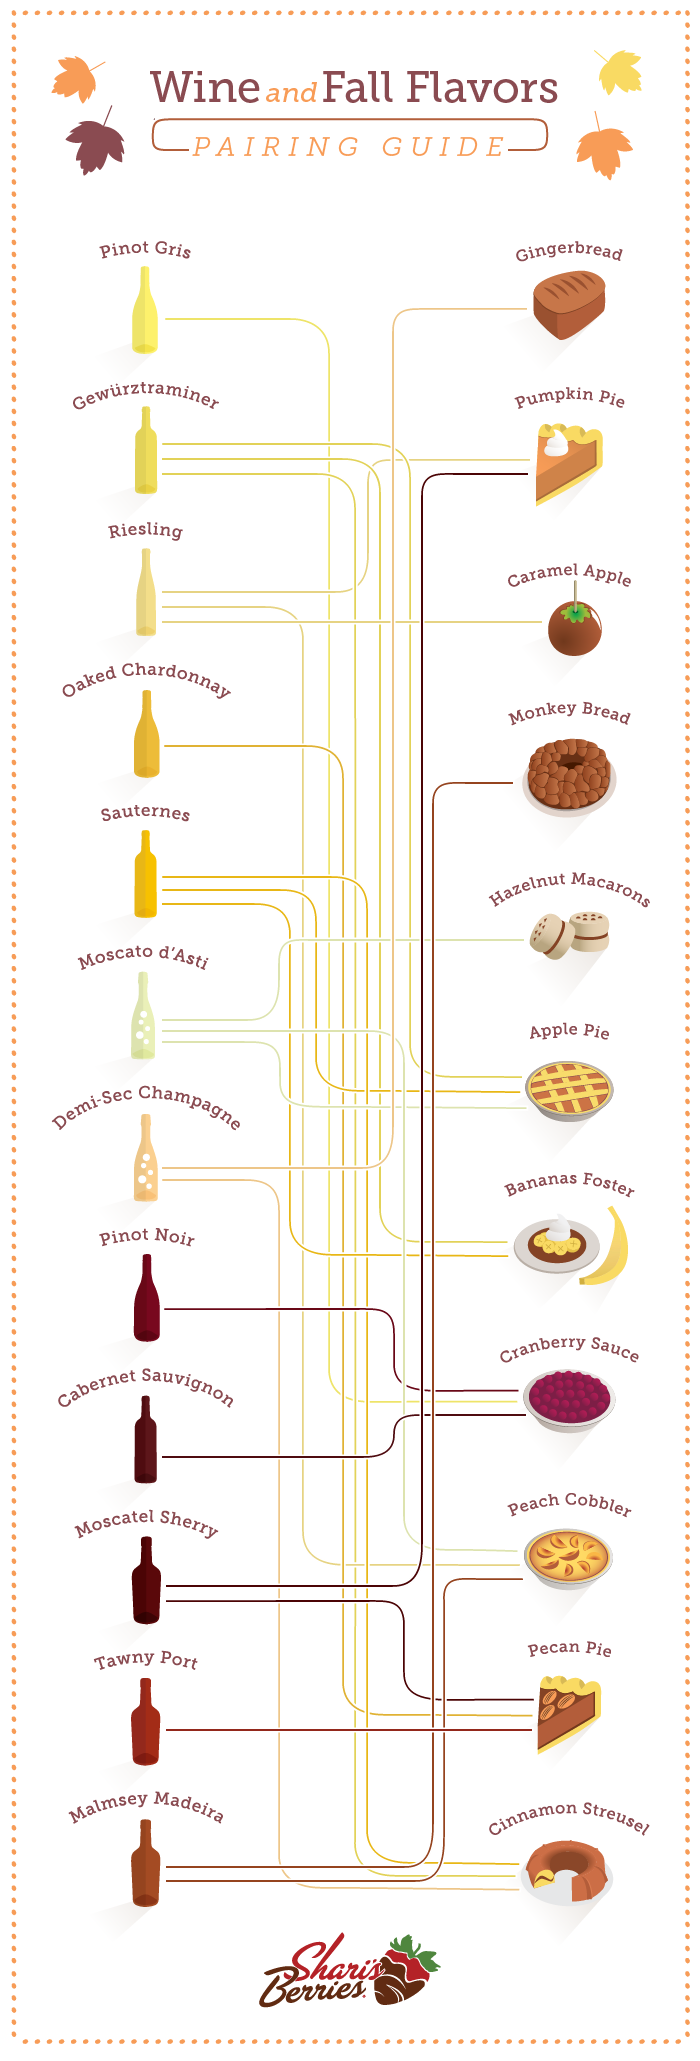 Wine and Fall Flavors Pairing Guide